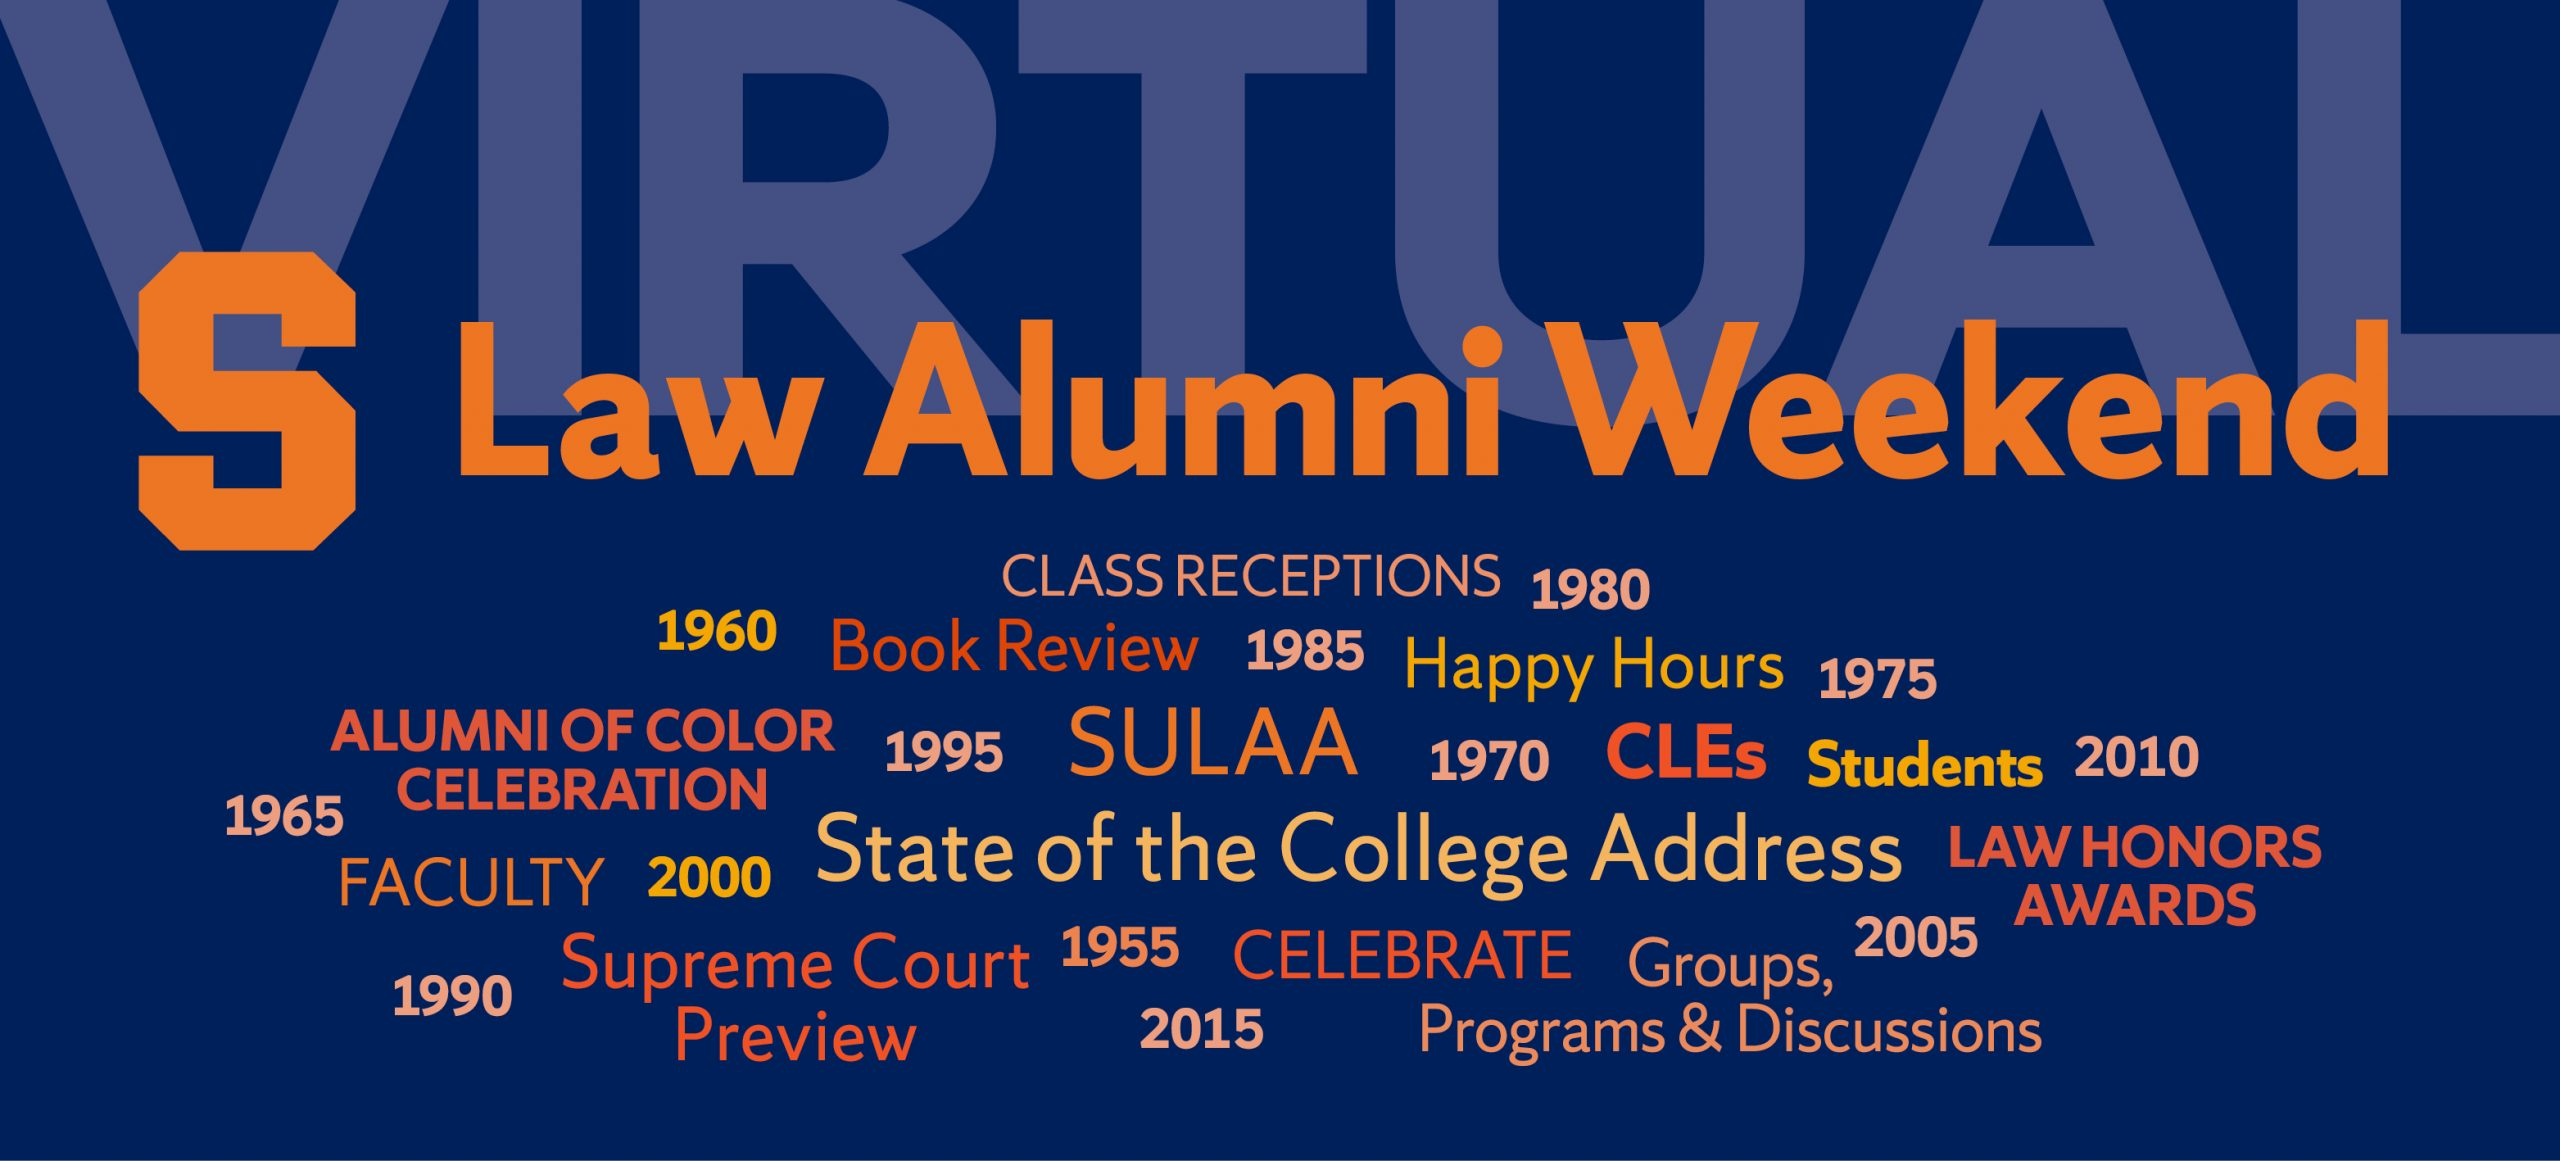 Virtual Law Alumni Weekend graphic